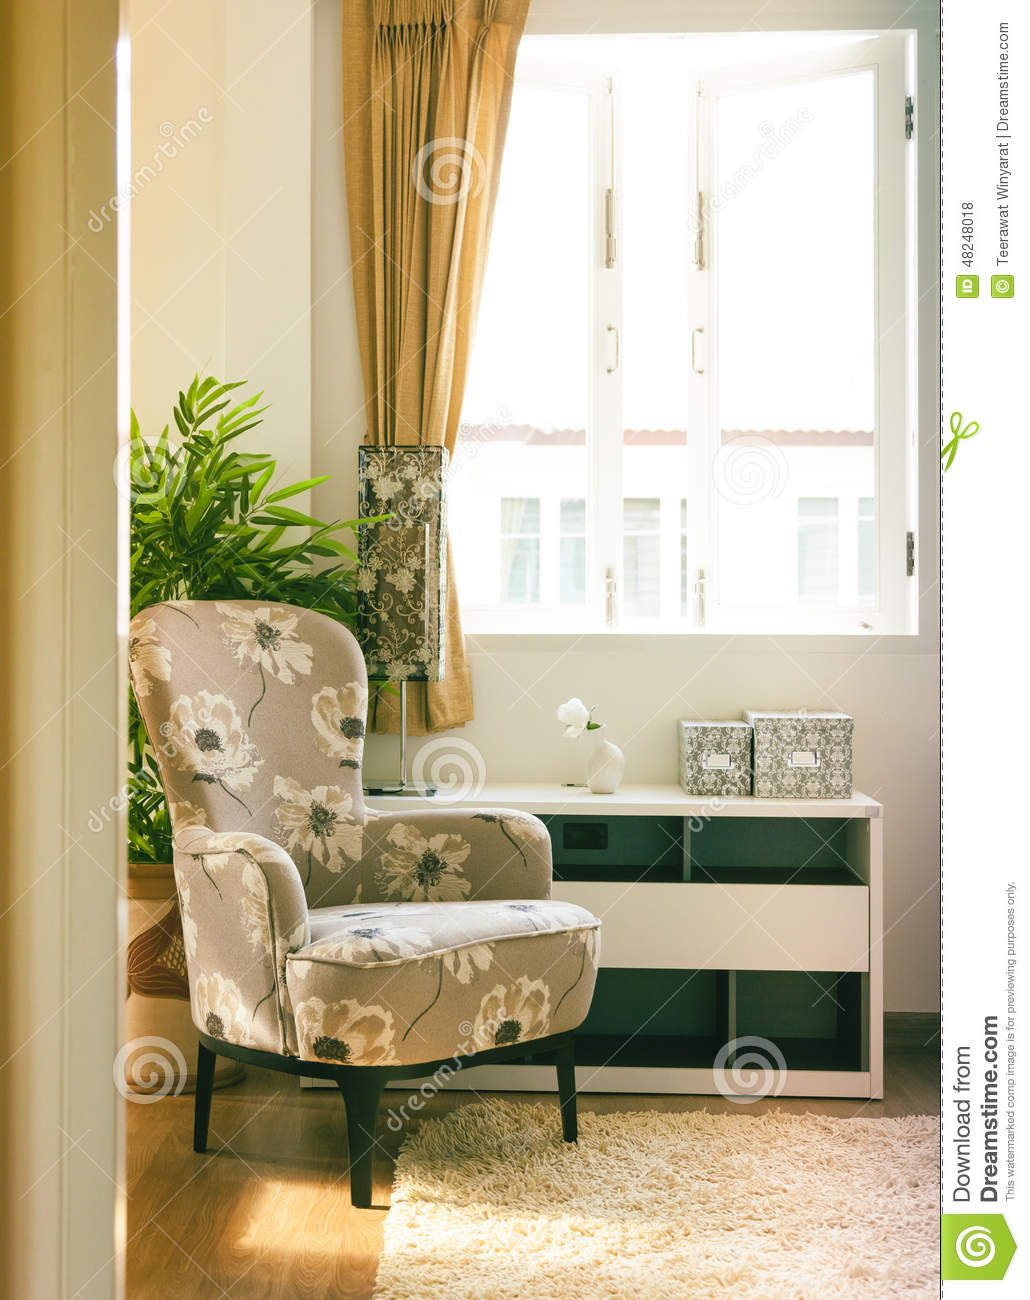 D coration int rieure de maison de fauteuil de salon photo stock image 48248018 for Photos decoration interieure salon